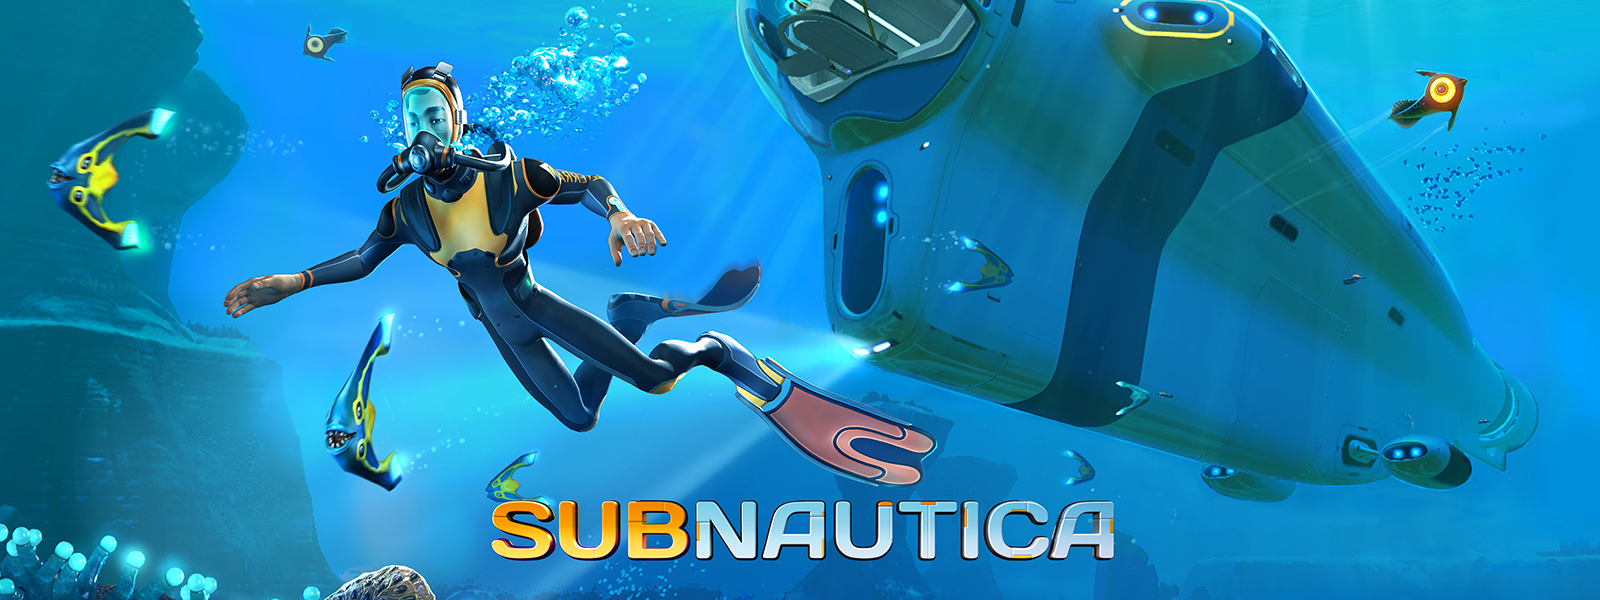 Subnautica, a diver and some glowing fish swim in front of a futuristic submarine.